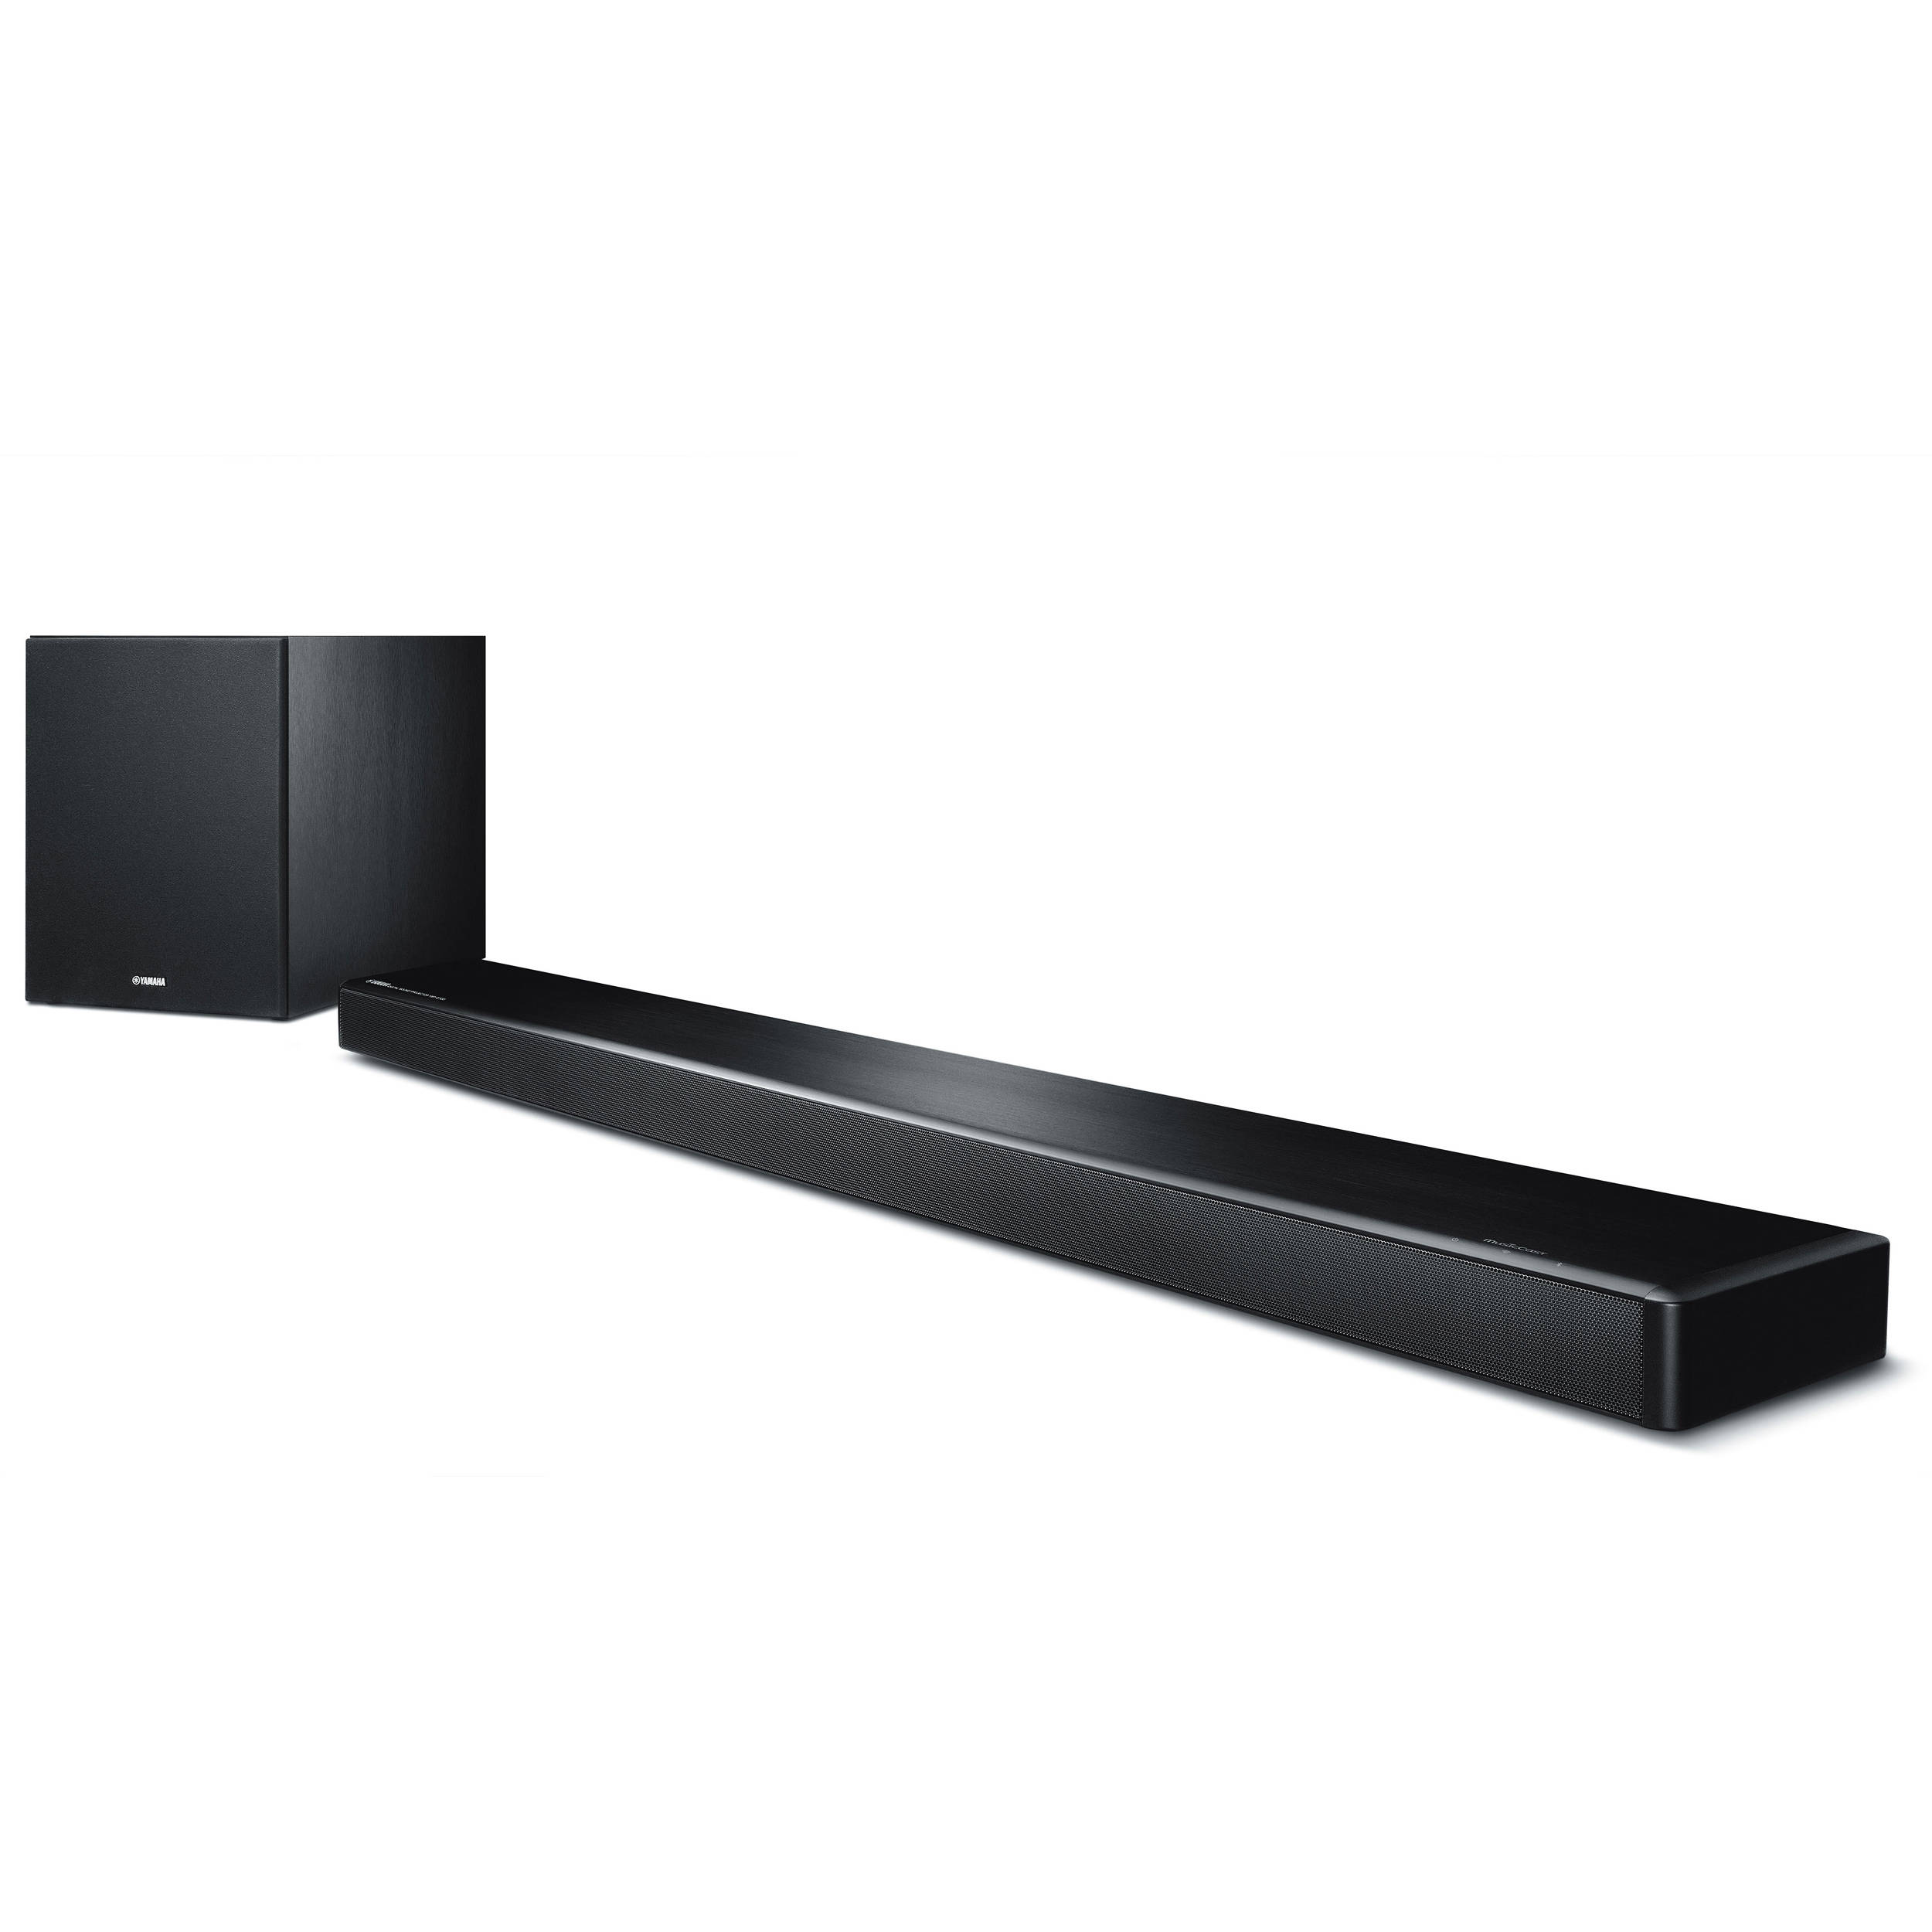 yamaha musiccast ysp 2700 107w 7 1 channel soundbar ysp 2700bl. Black Bedroom Furniture Sets. Home Design Ideas